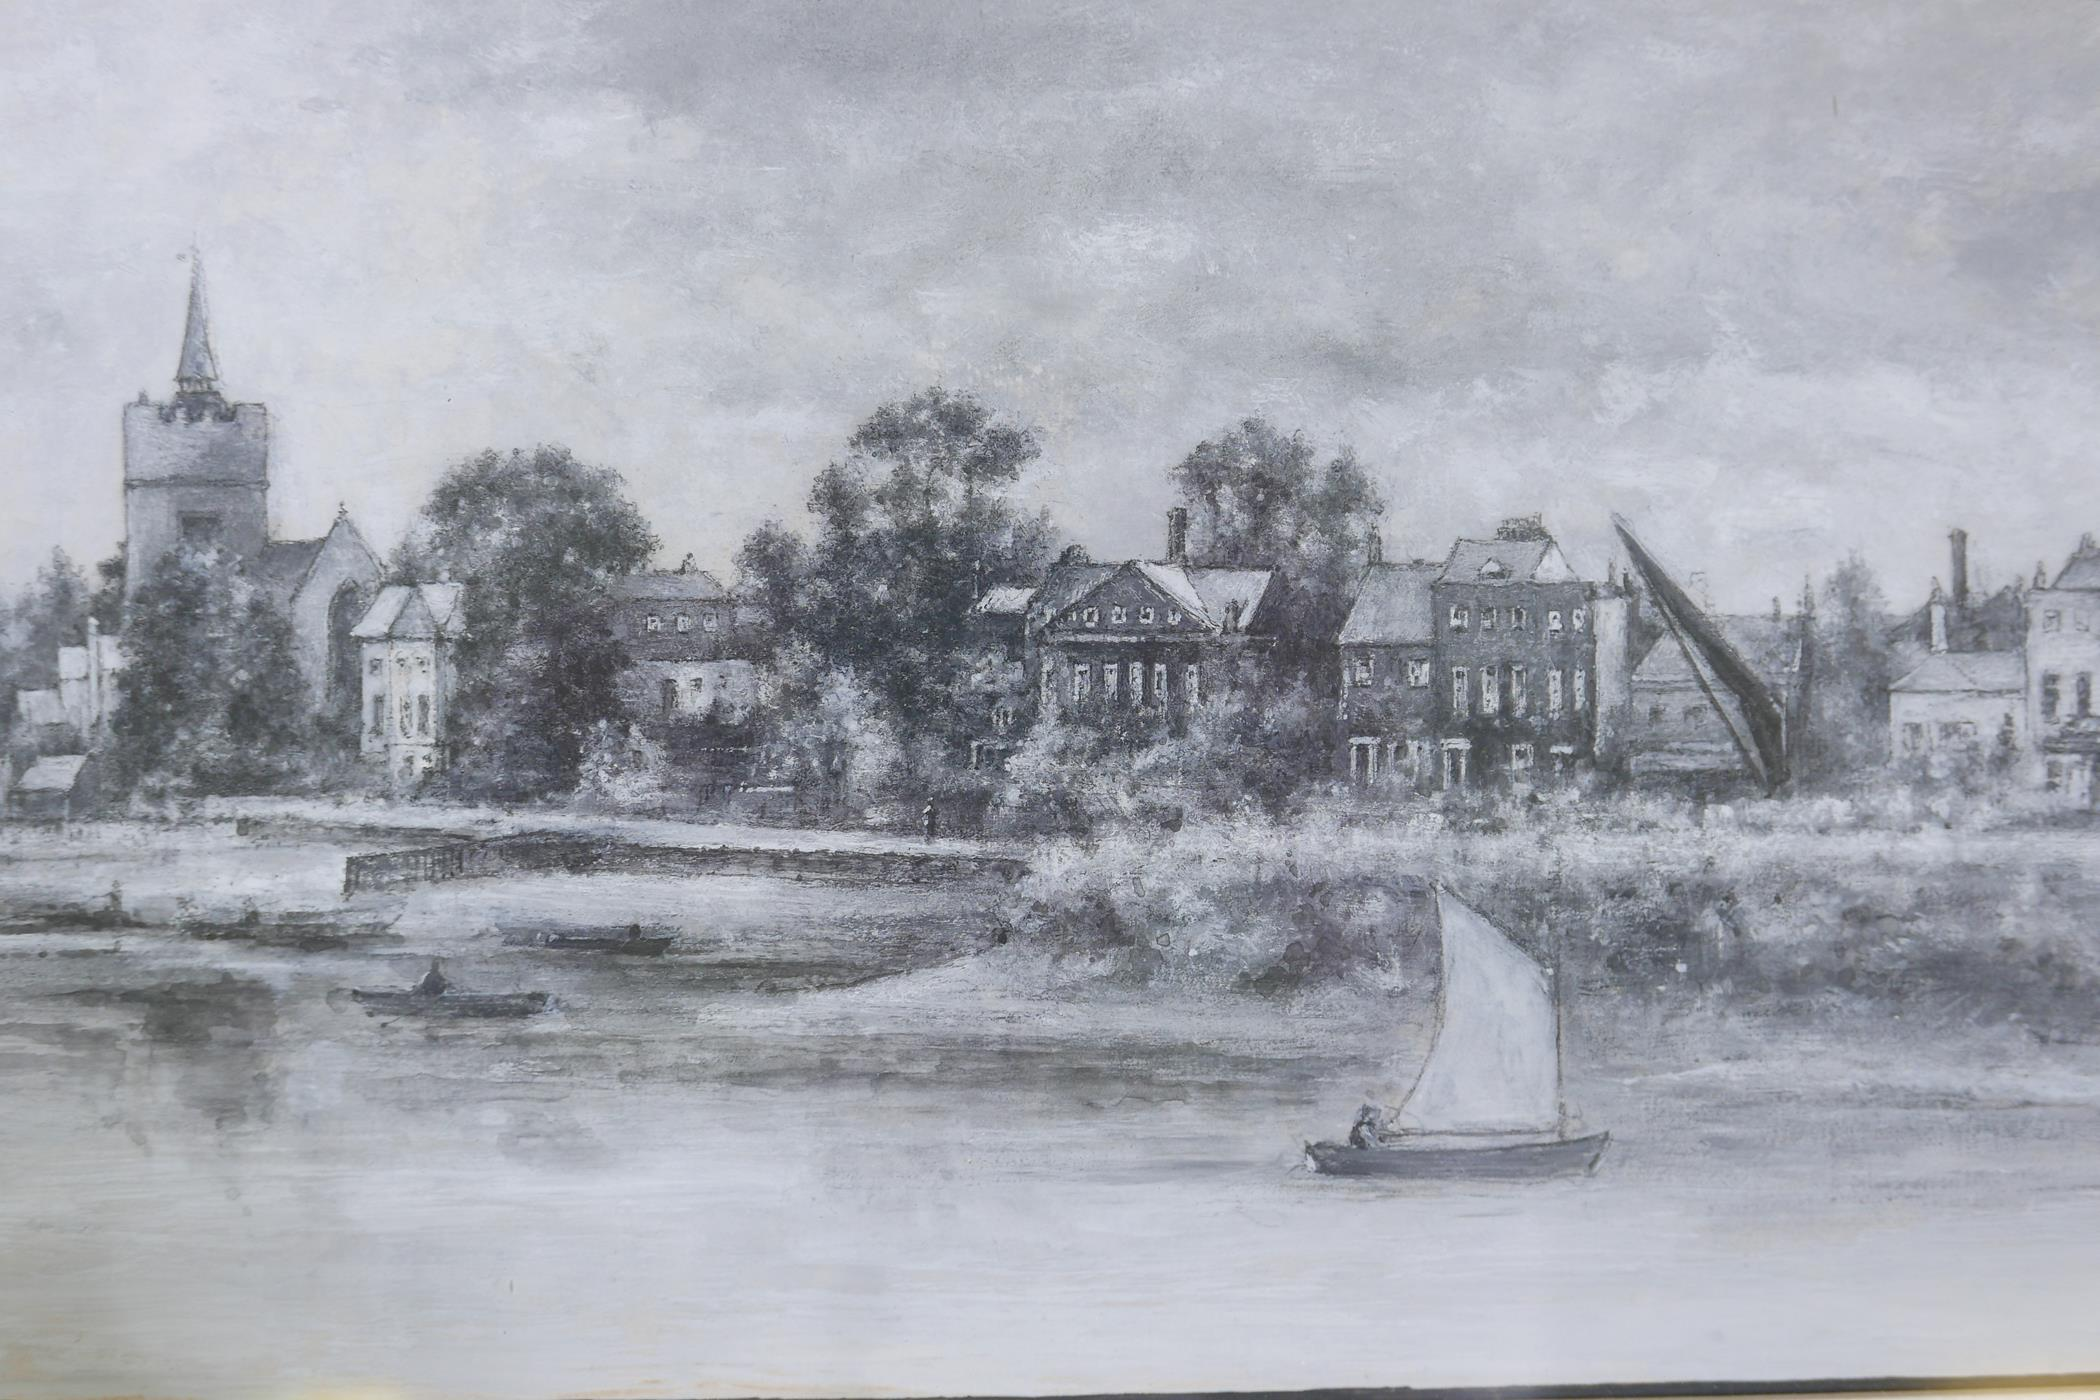 """A.W. Henley, View of the Thames at Hammersmith with The Dove public house, signed gouache, 11 """" x - Image 3 of 5"""